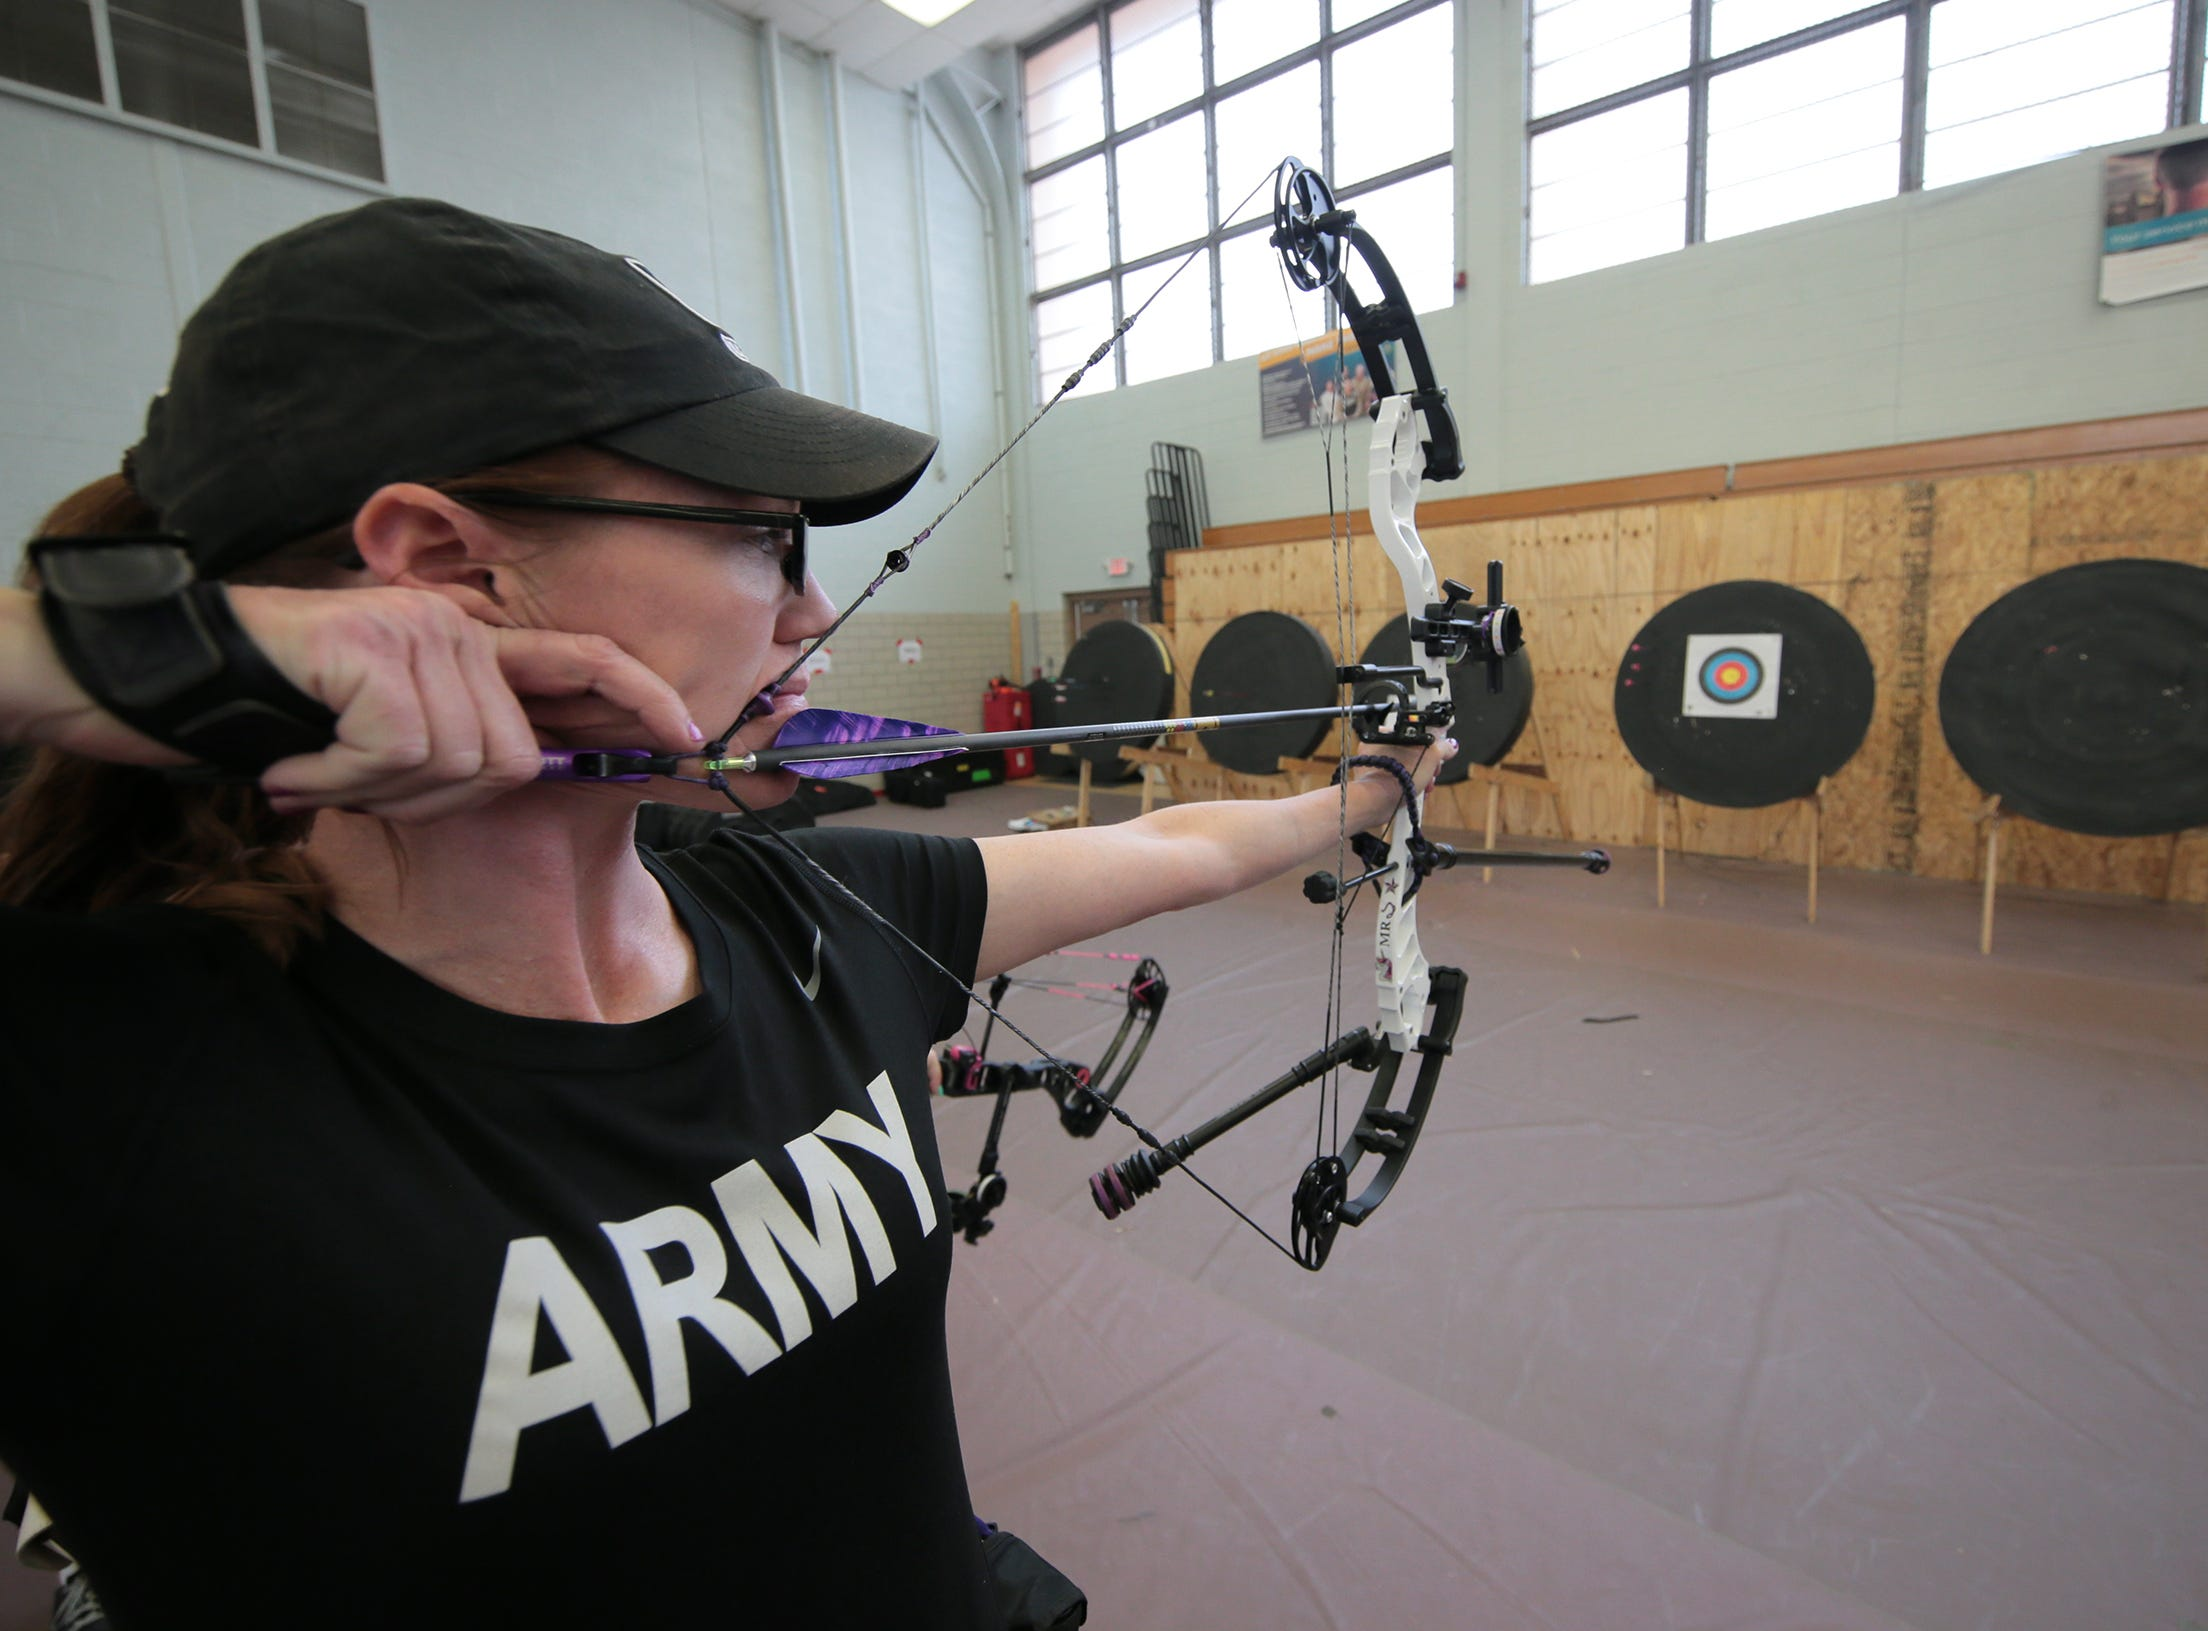 Soldiers from across the Army are at Fort Bliss competing at the U.S. Army Warrior Trials at Fort Bliss in hopes of representing the Army at the Defense Warrior Games in Tampa, Fla. in the summer. The competition is open to active duty, veterans, reserve and national guard.